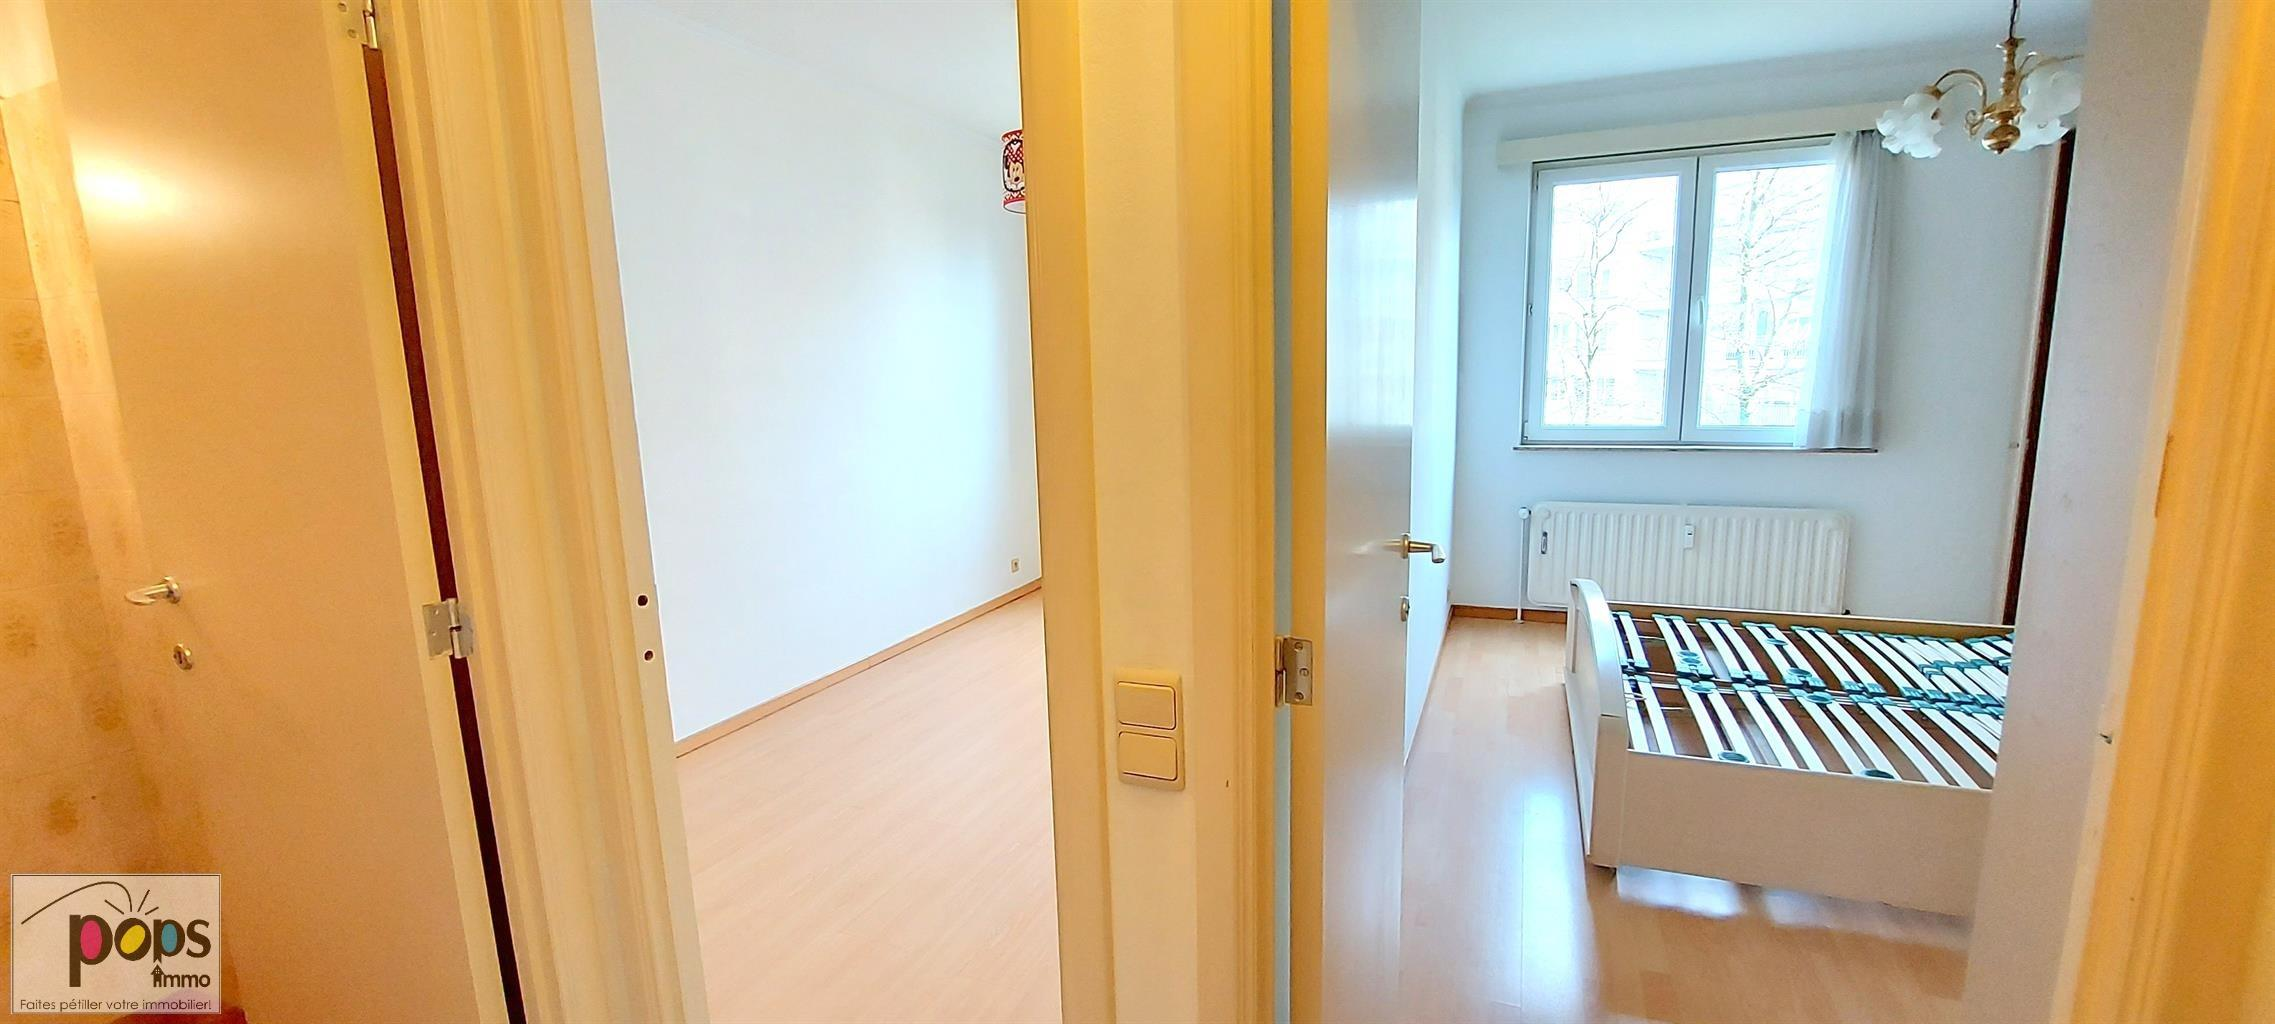 Appartement - Uccle - #4311863-15